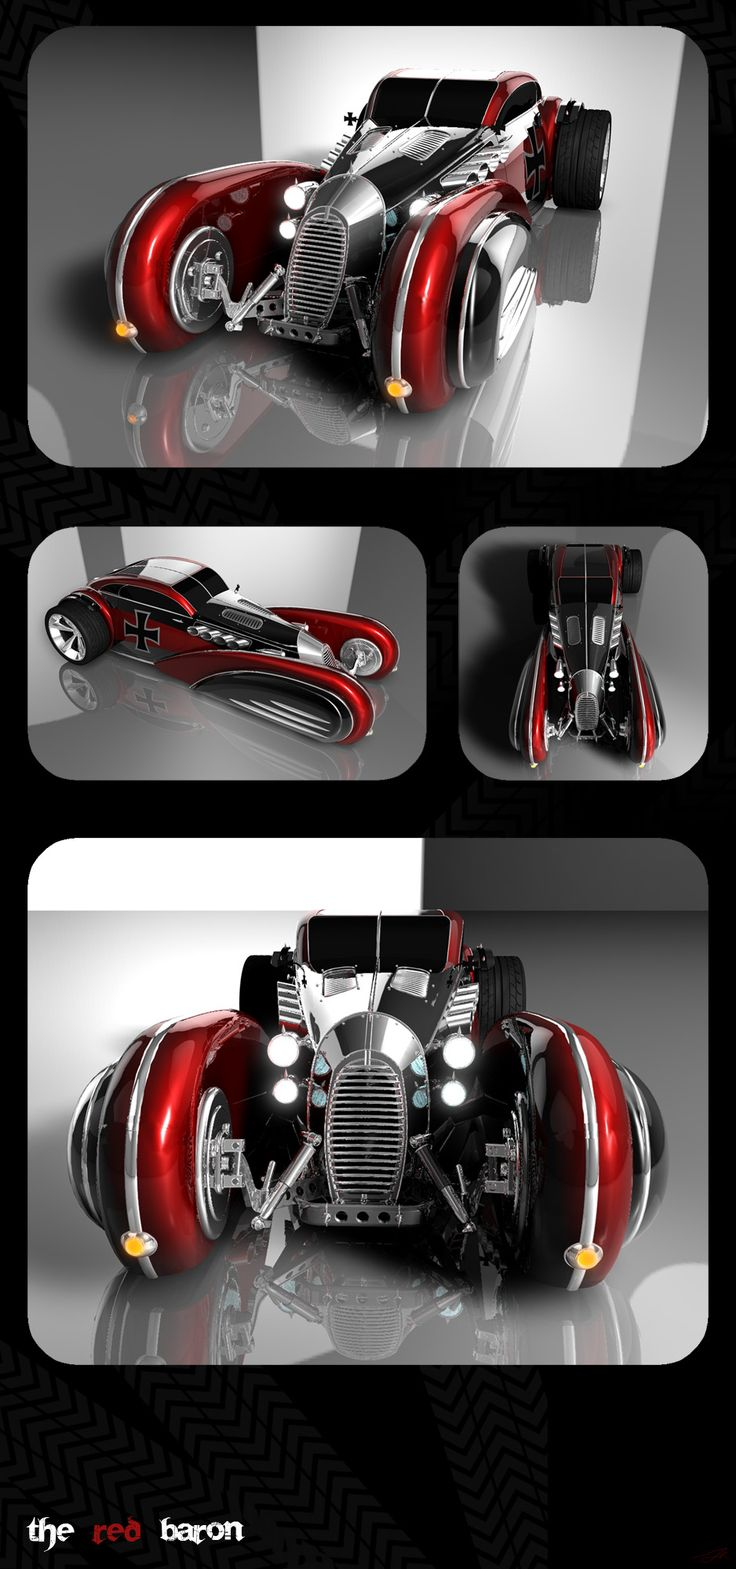 200+ ideas for my new Street Rod :The Red Baron by ~LadyDeuce on deviantART